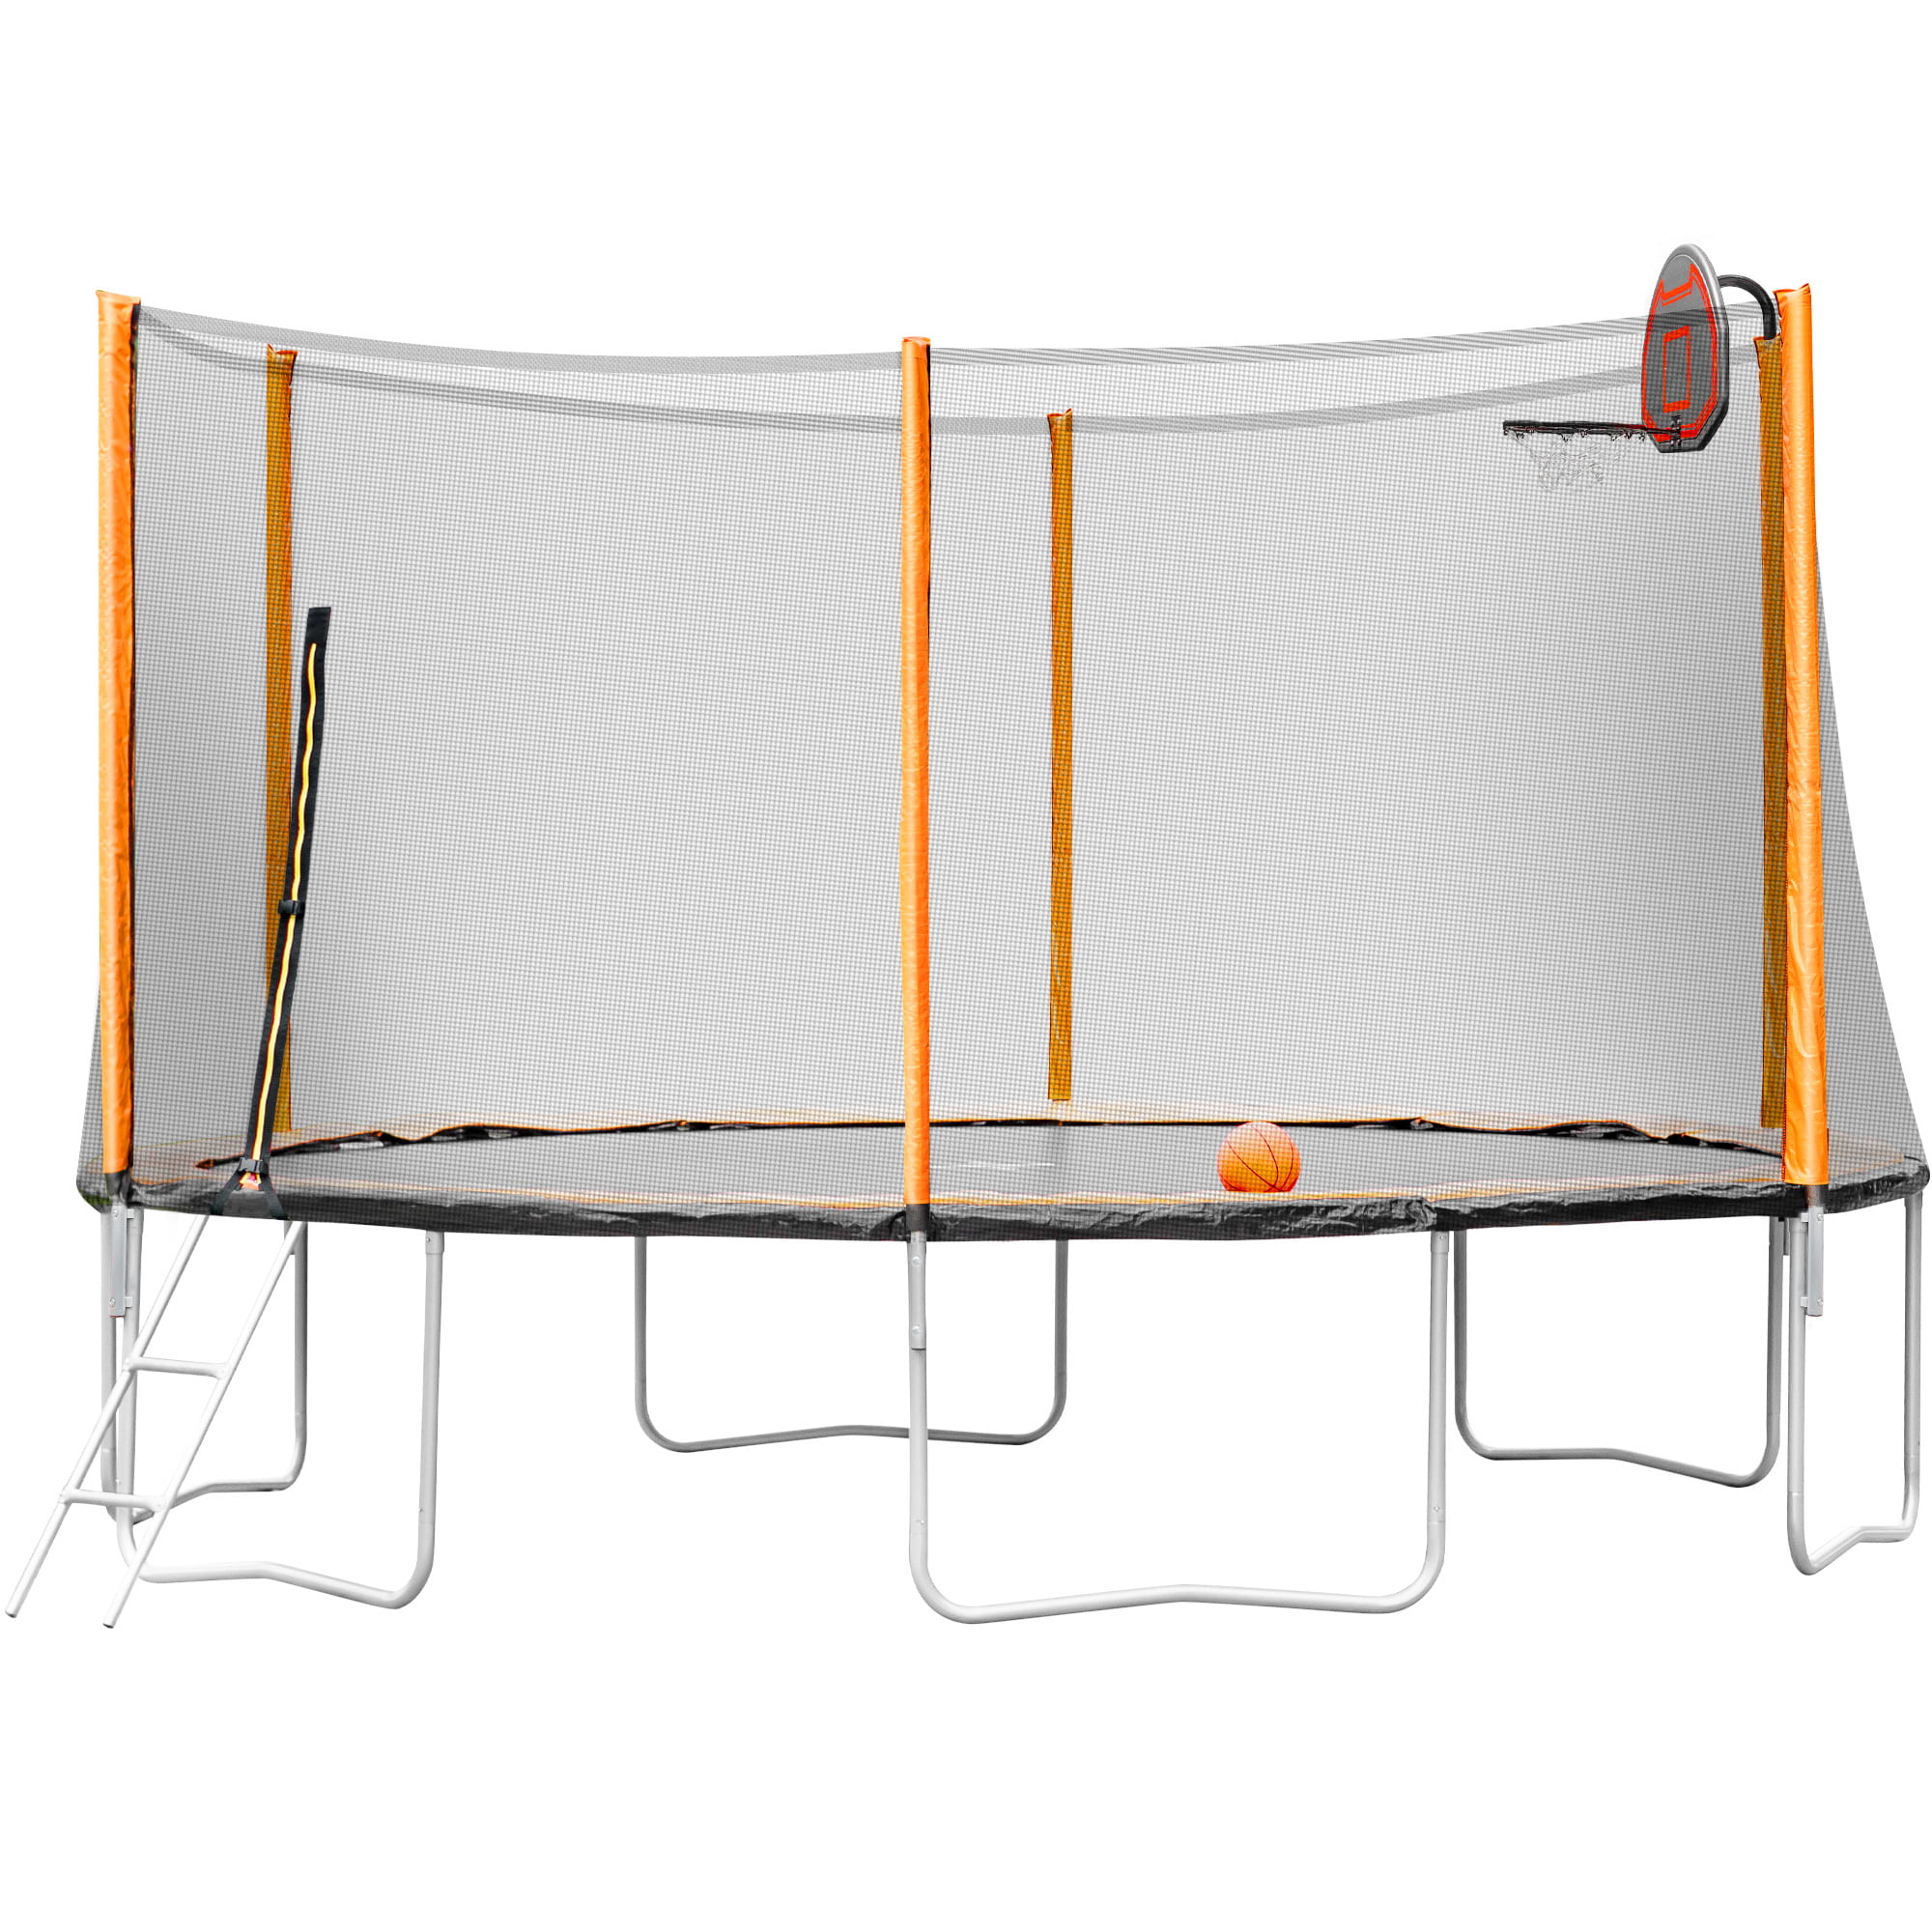 14FT Outdoor Garden Powder-Coated Trampoline With Basketball Hoop, Ladder And Enclosure